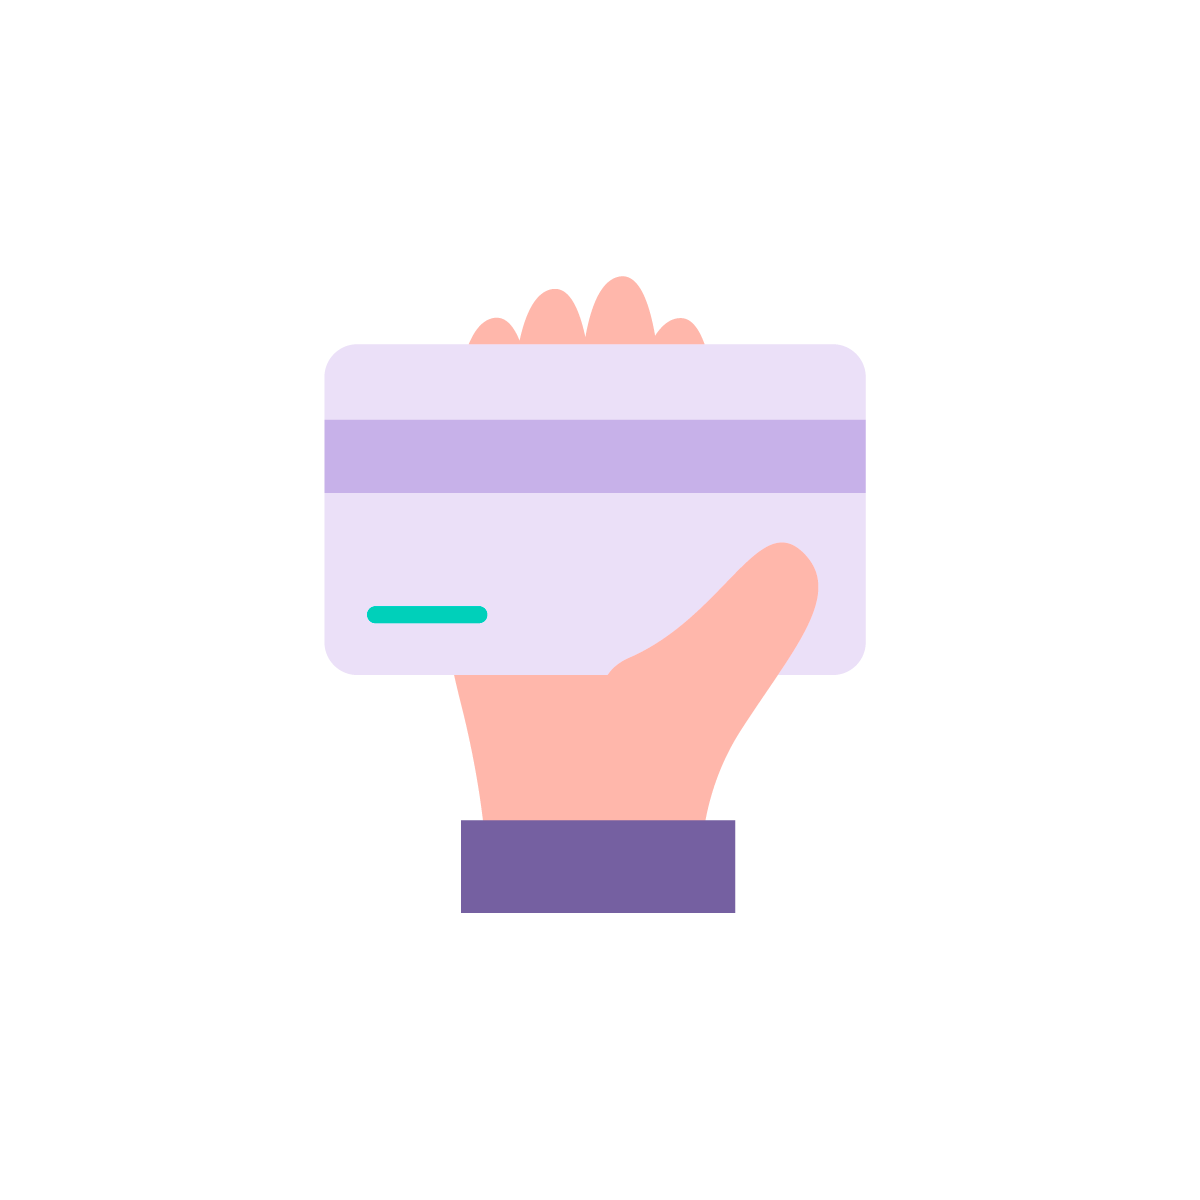 13007_Product Benefit Icons_6. Flexible payment methods-1